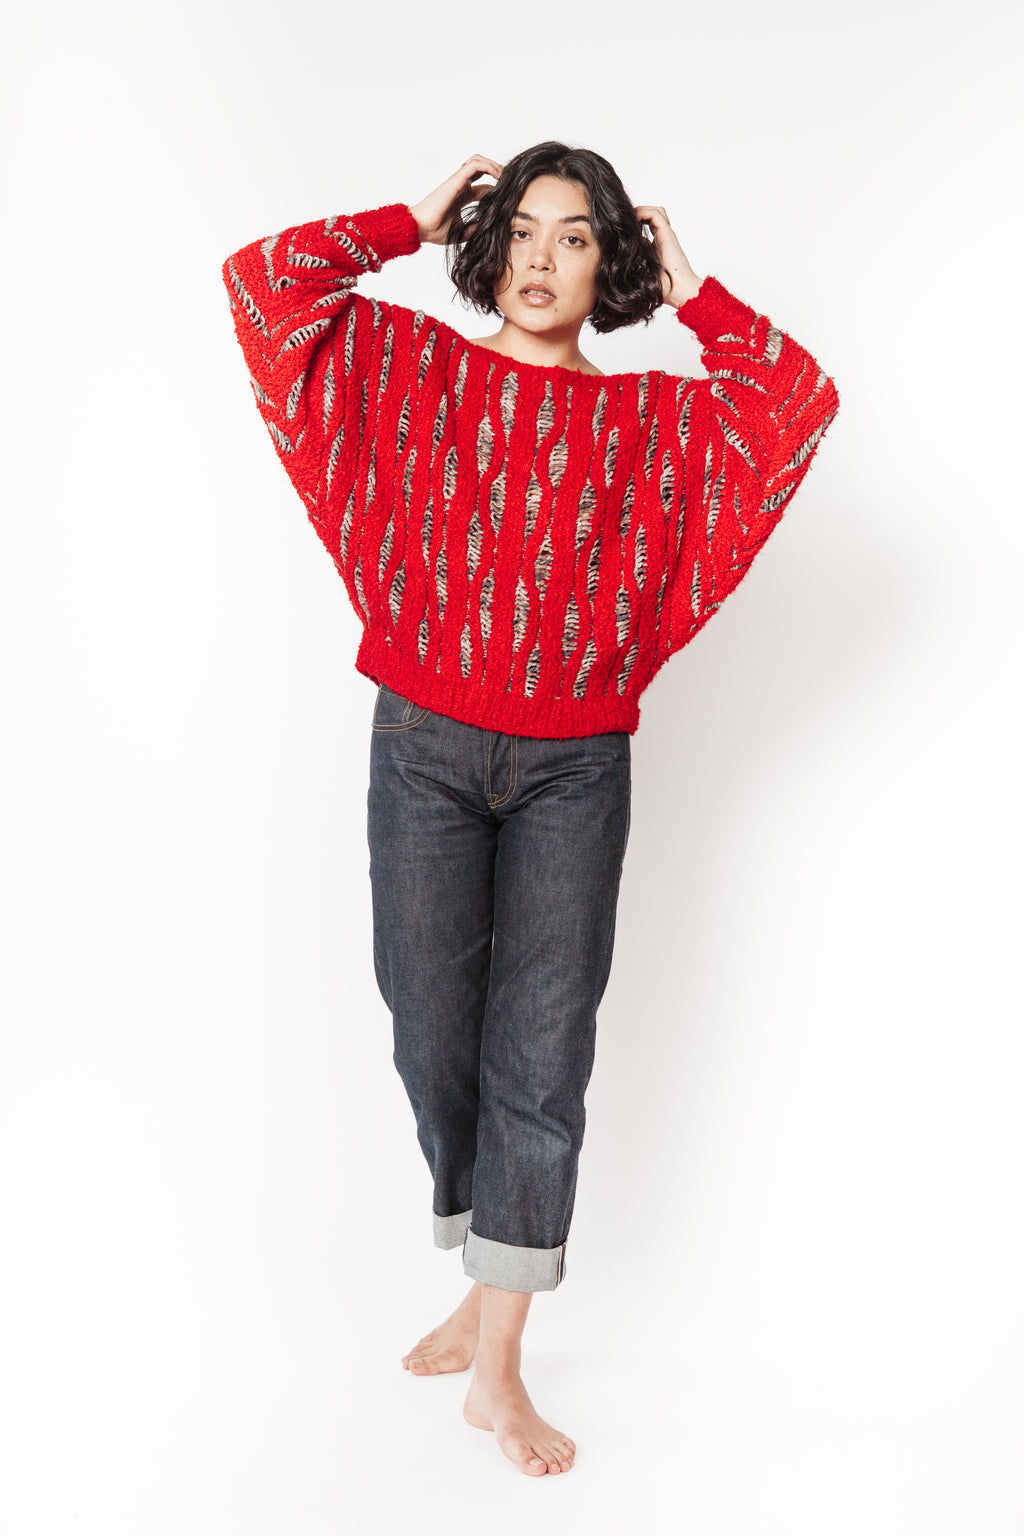 Vintage 80's red knit sweater